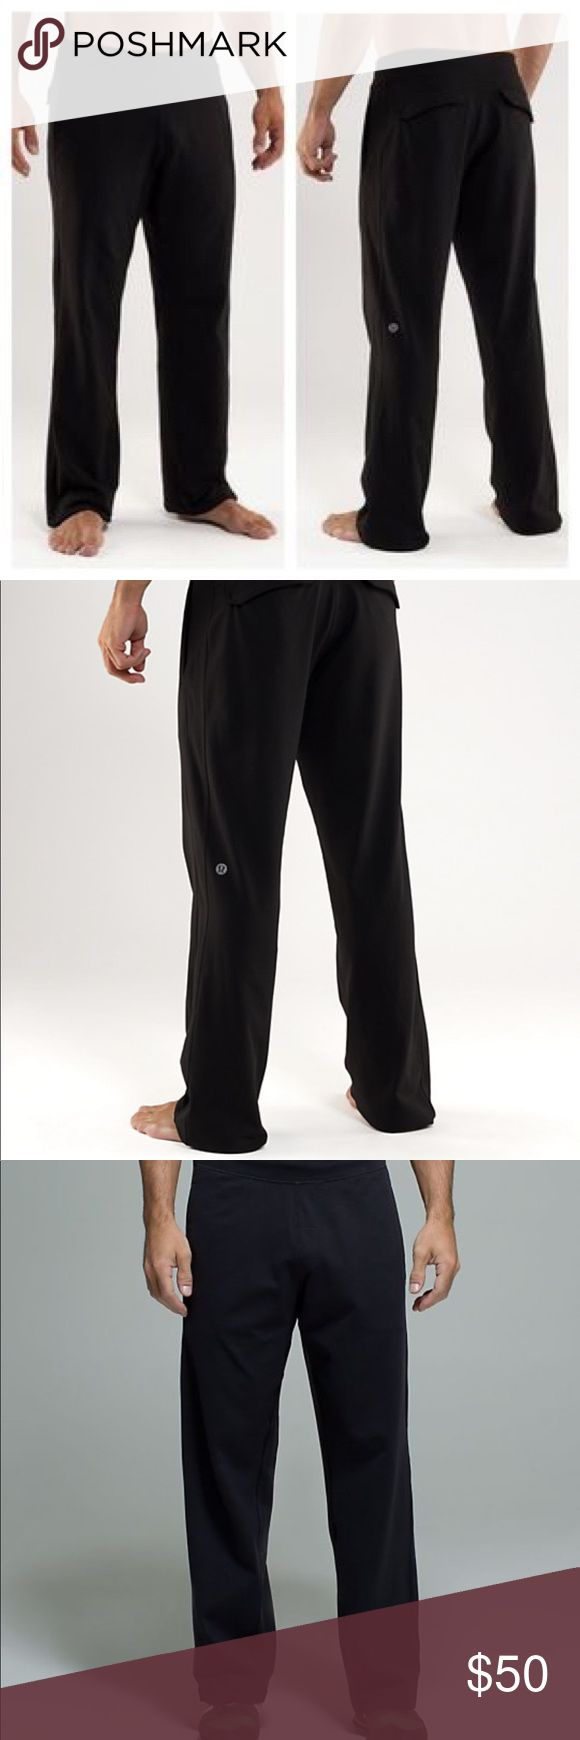 Lululemon men's kung fu martial art sweat pants Lululemon athletica men's sweatpant. I believe the style is called kung fu. Only worn once and in pristine condition. Size small (regular). Inseam: 27 lululemon athletica Pants Track Pants & Joggers